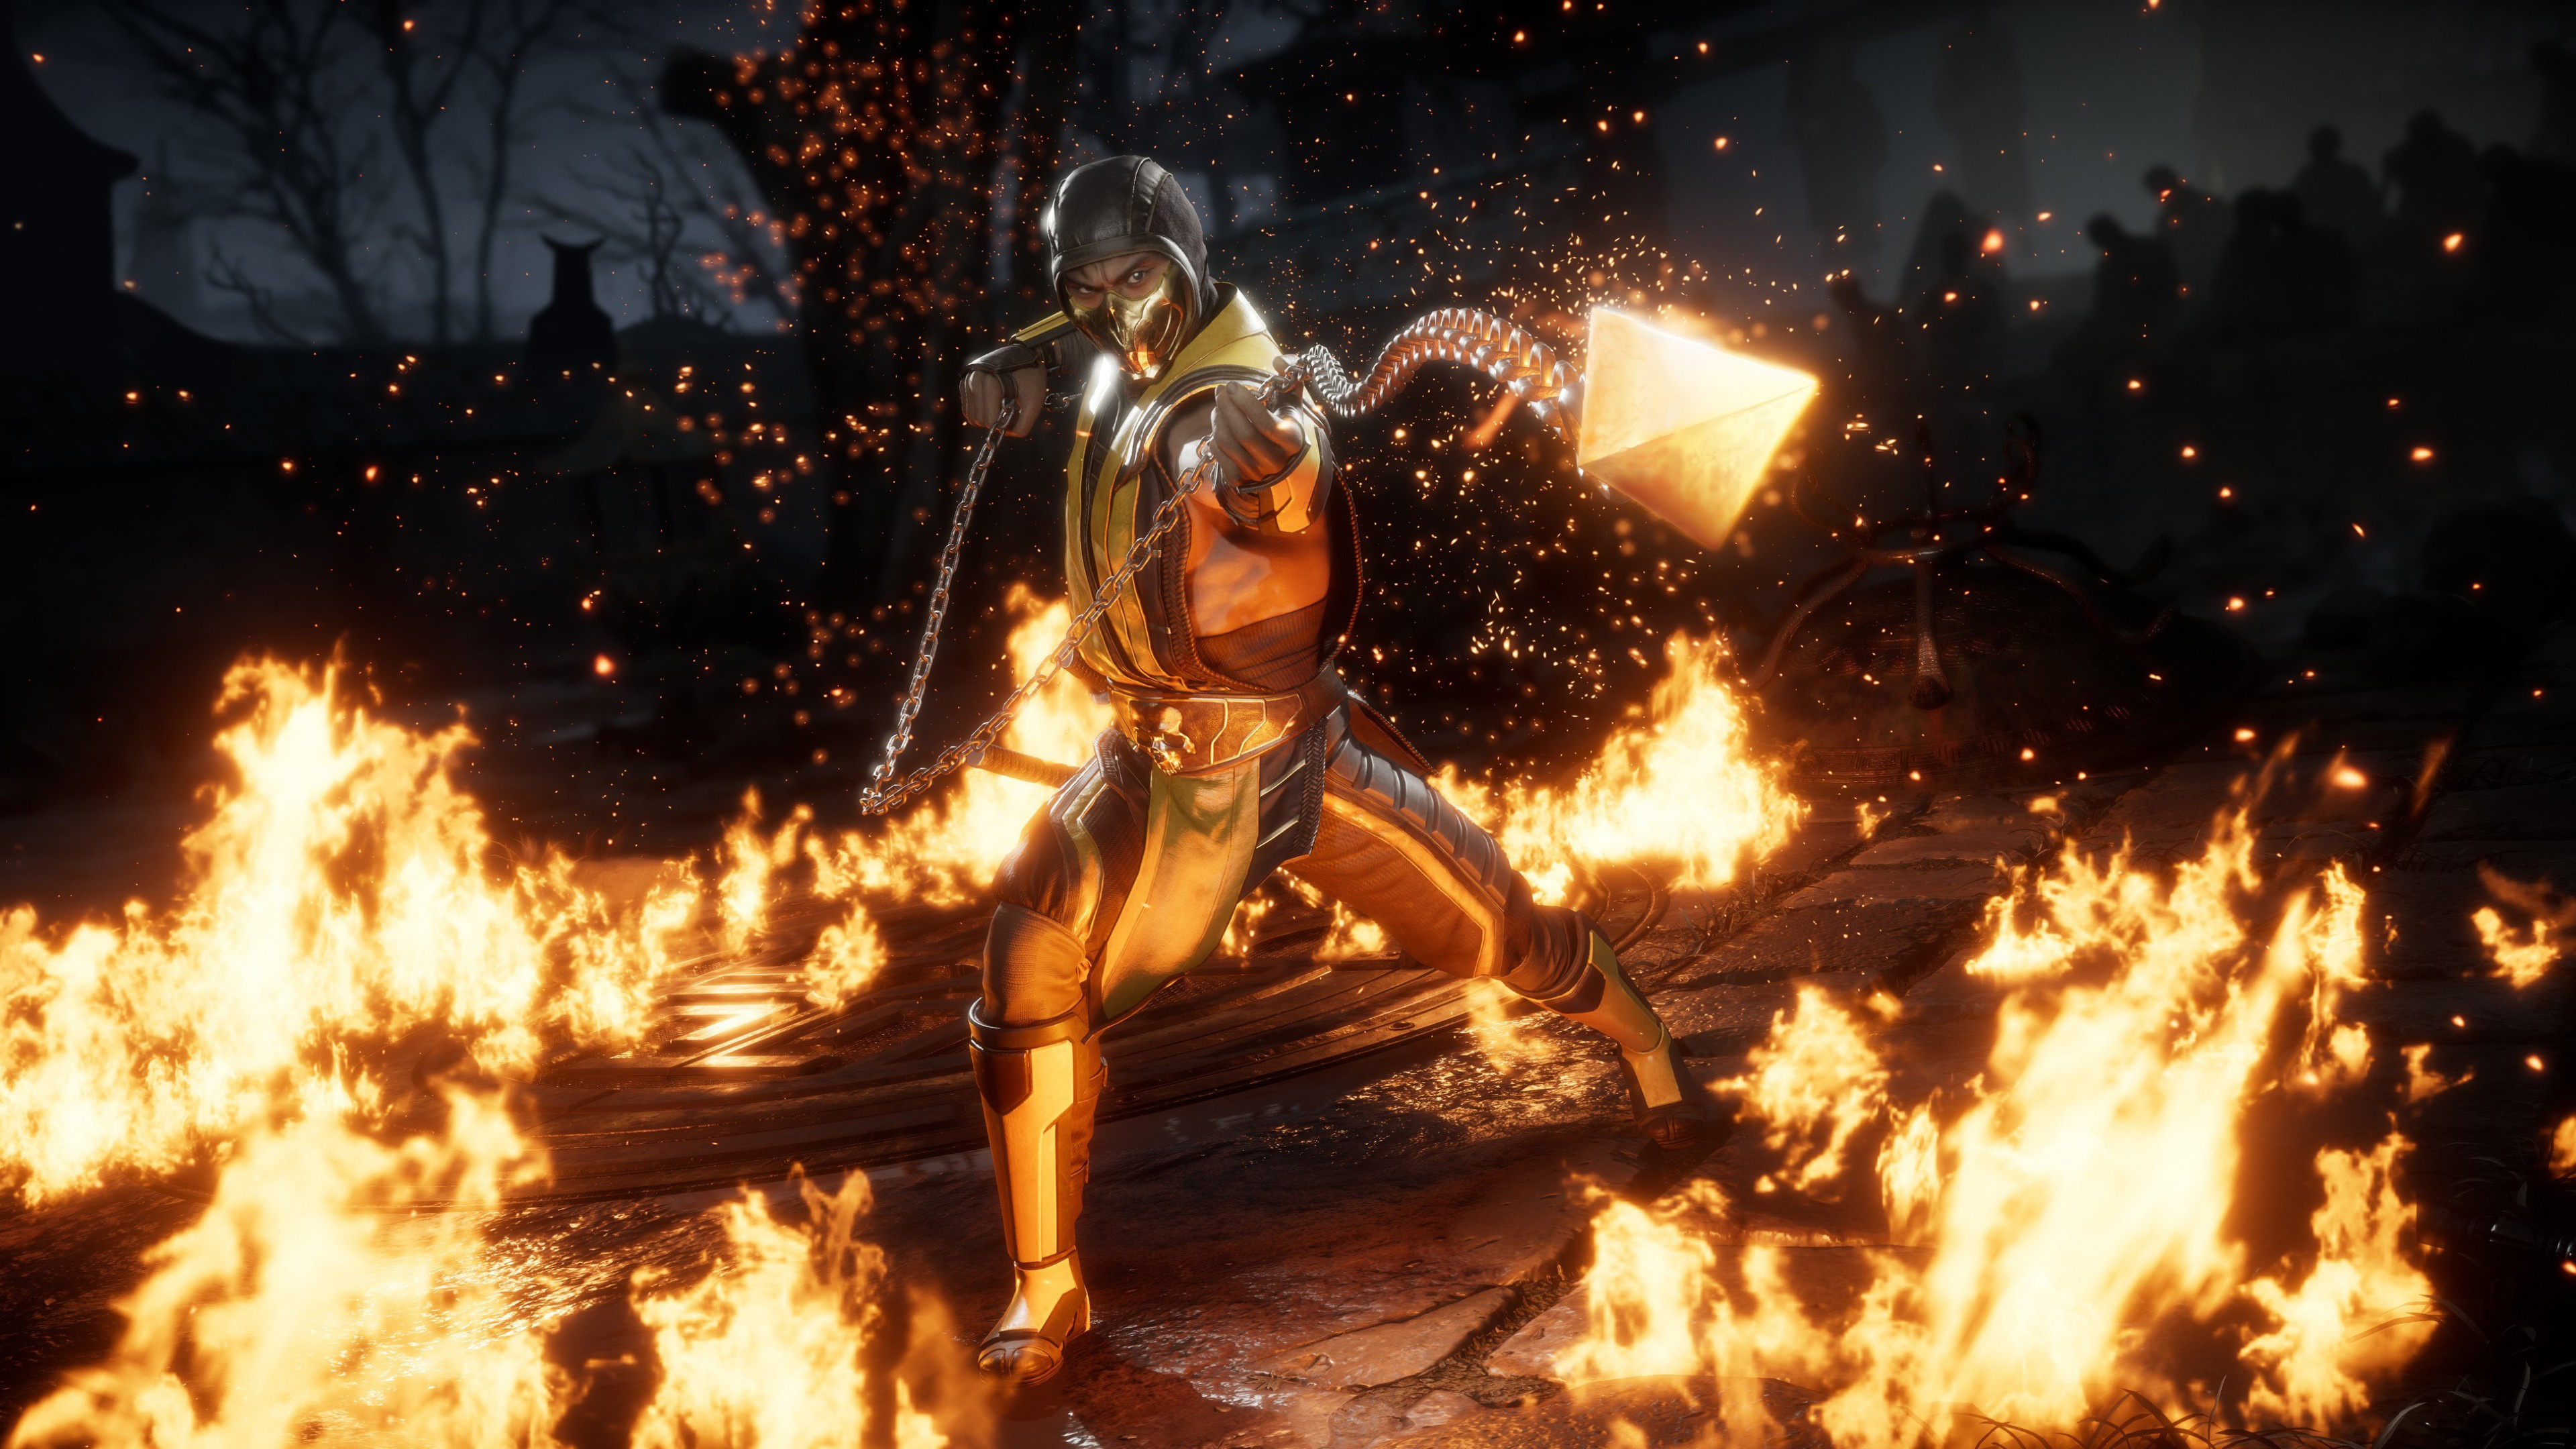 Mortal Kombat 11 Wallpapers In Ultra Hd 4k Gameranx